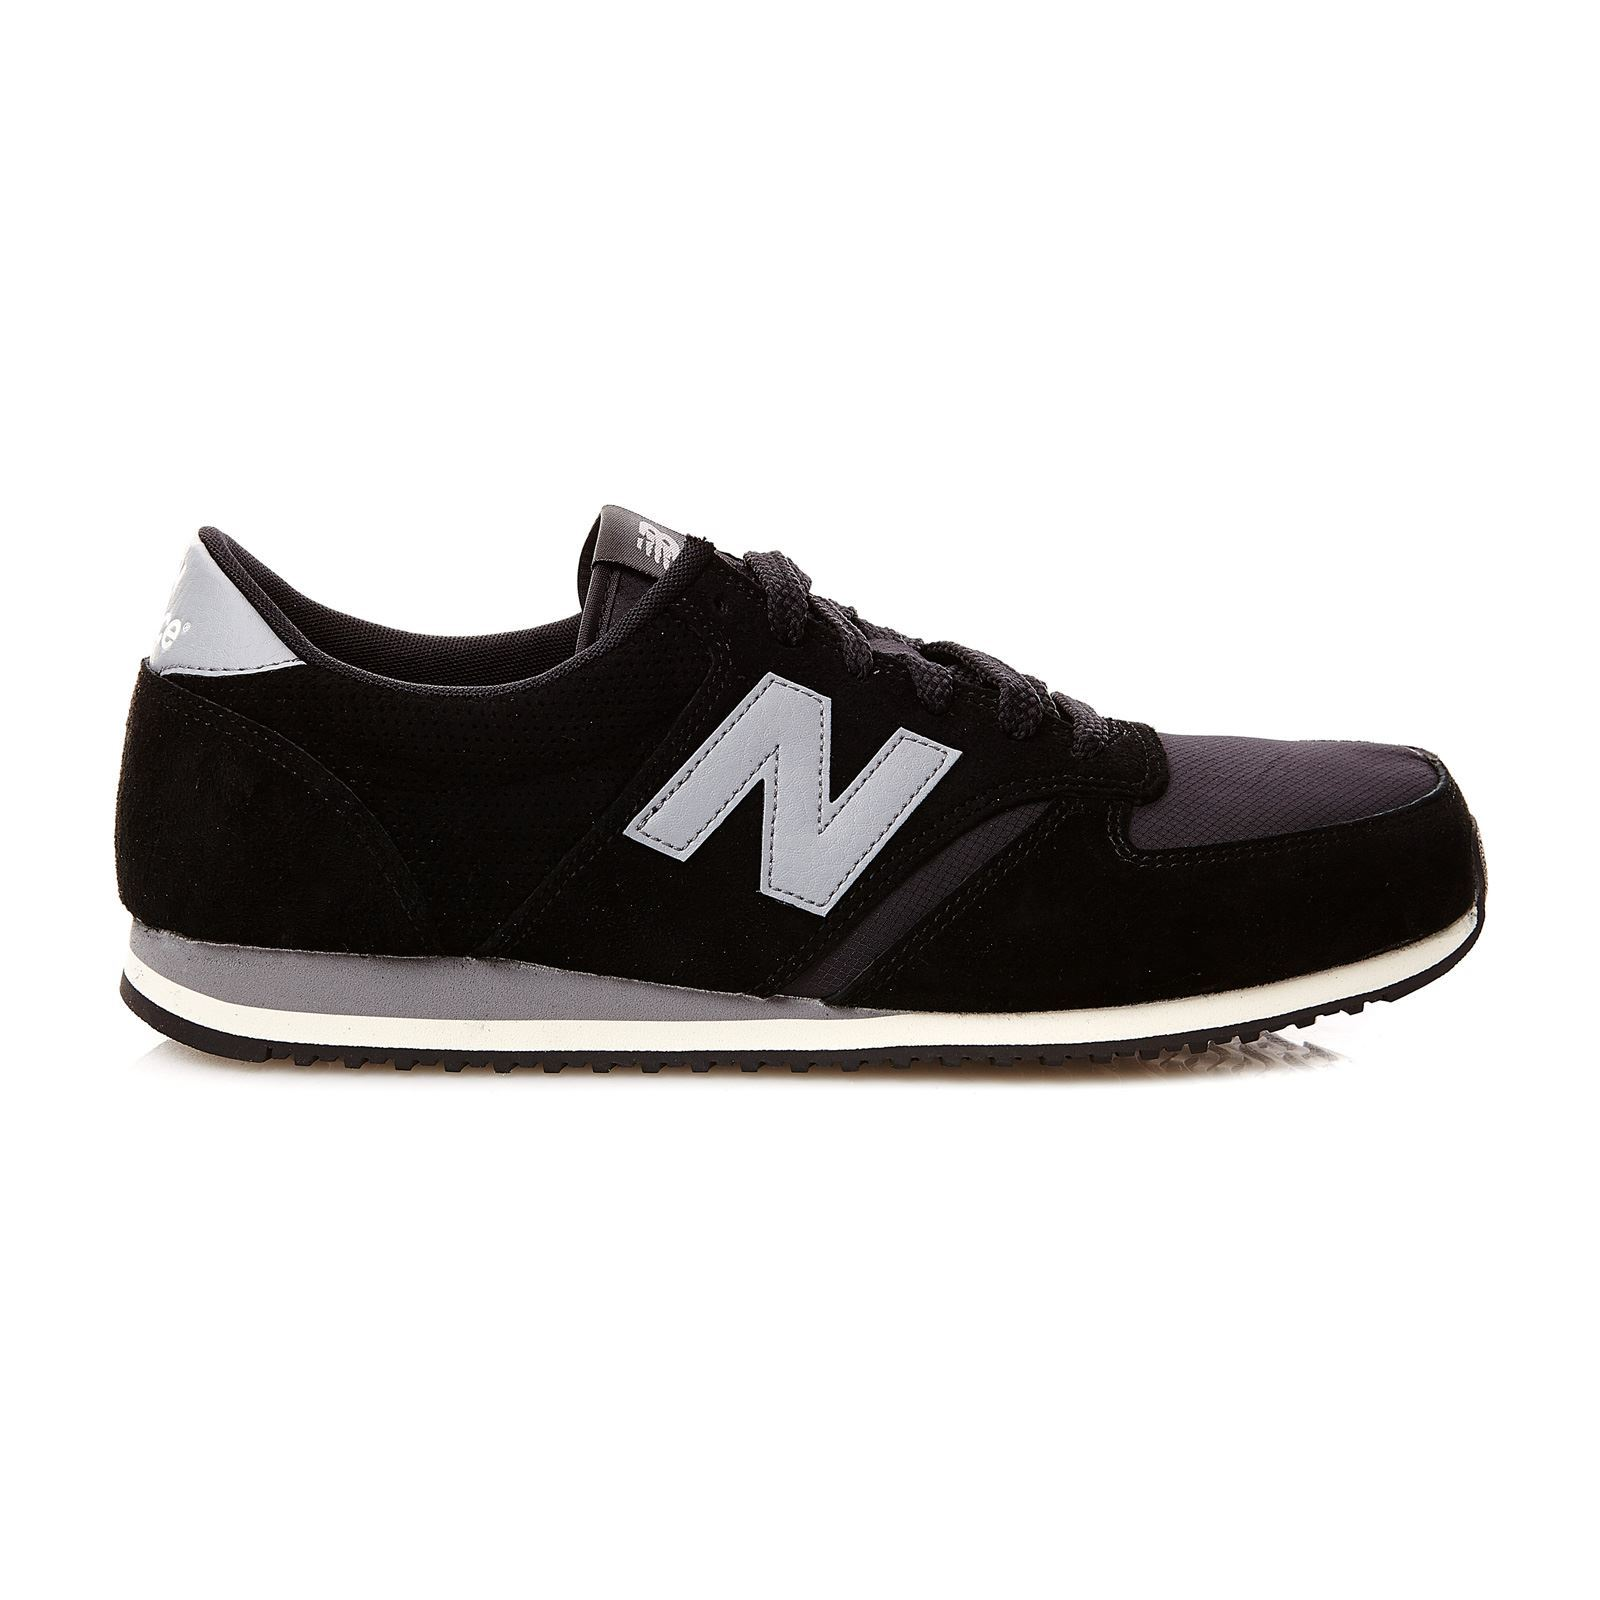 New Balance U420 D Scarpe da tennis sneakers nero